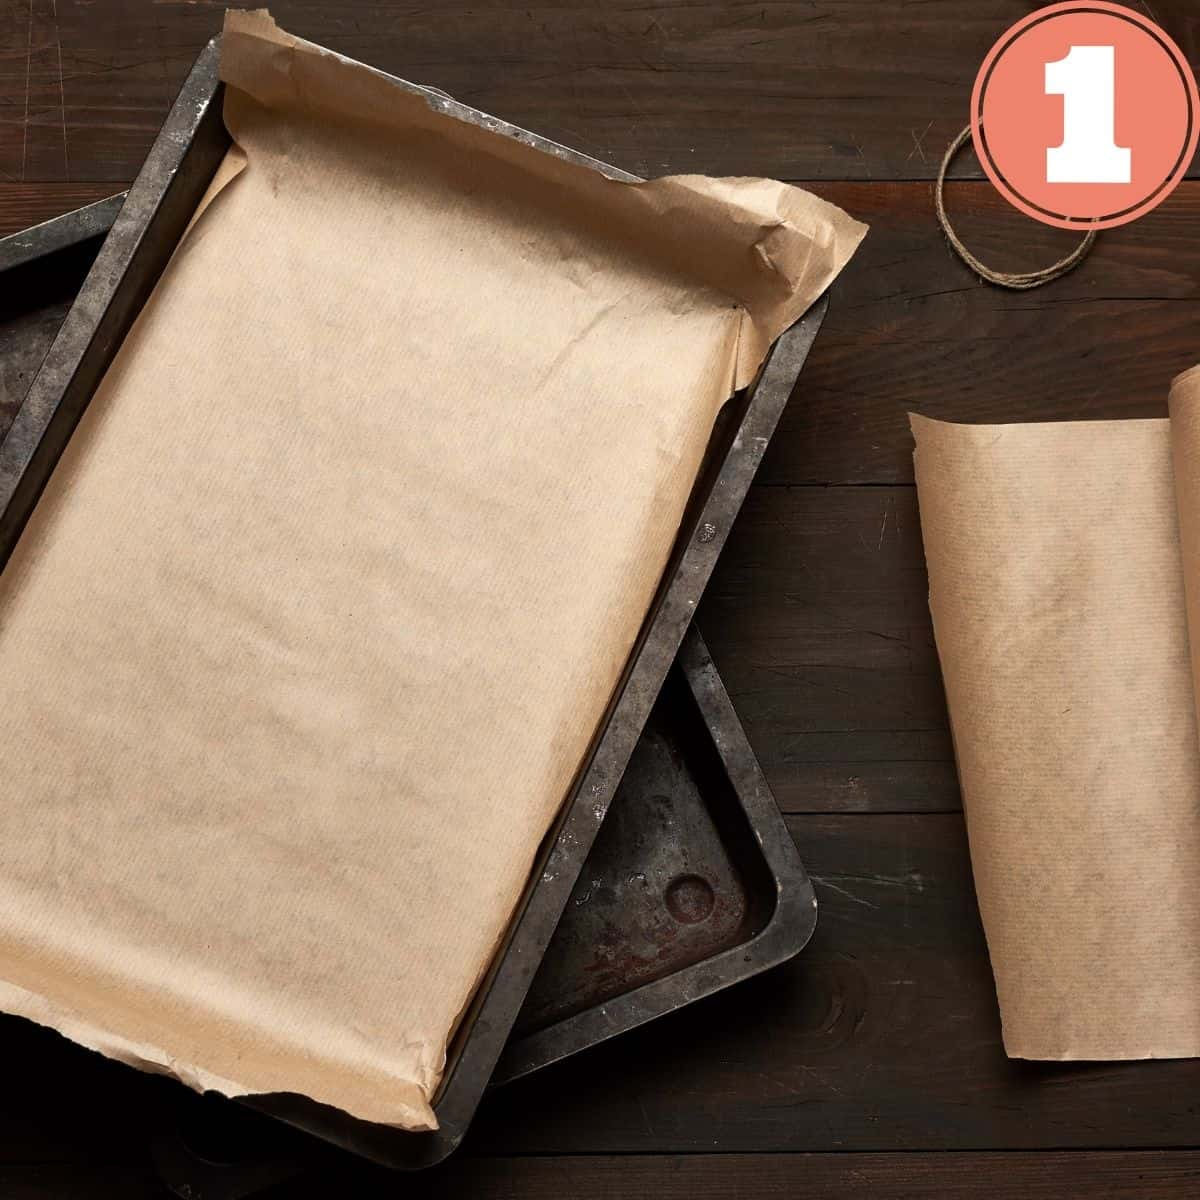 Two Baking sheet pans stacked with brown parchment paper and a roll of brown parchment paper